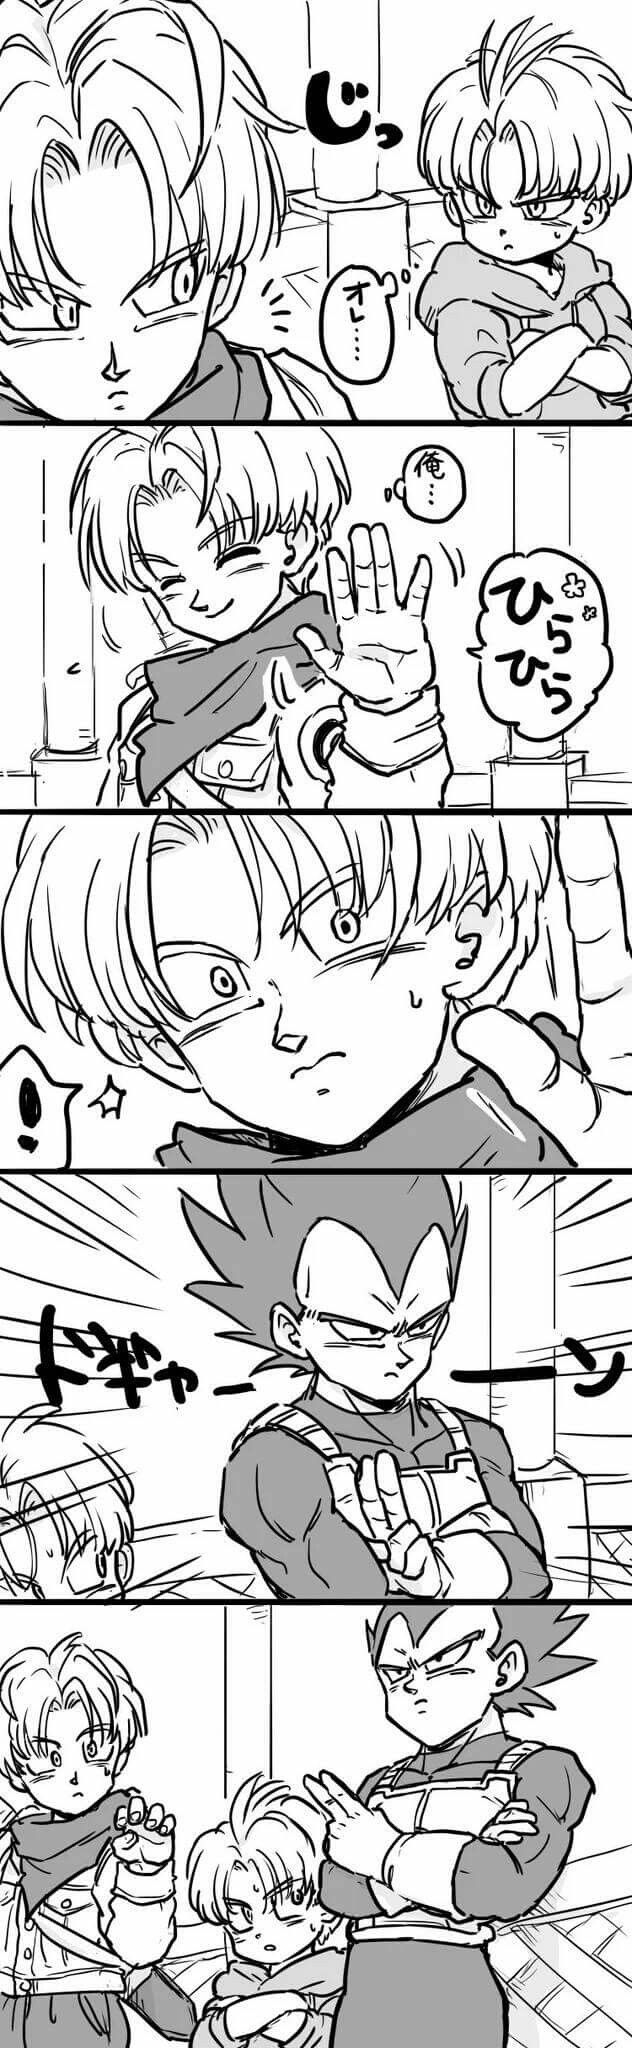 Vegeta, Trunks y Trunks del futuro